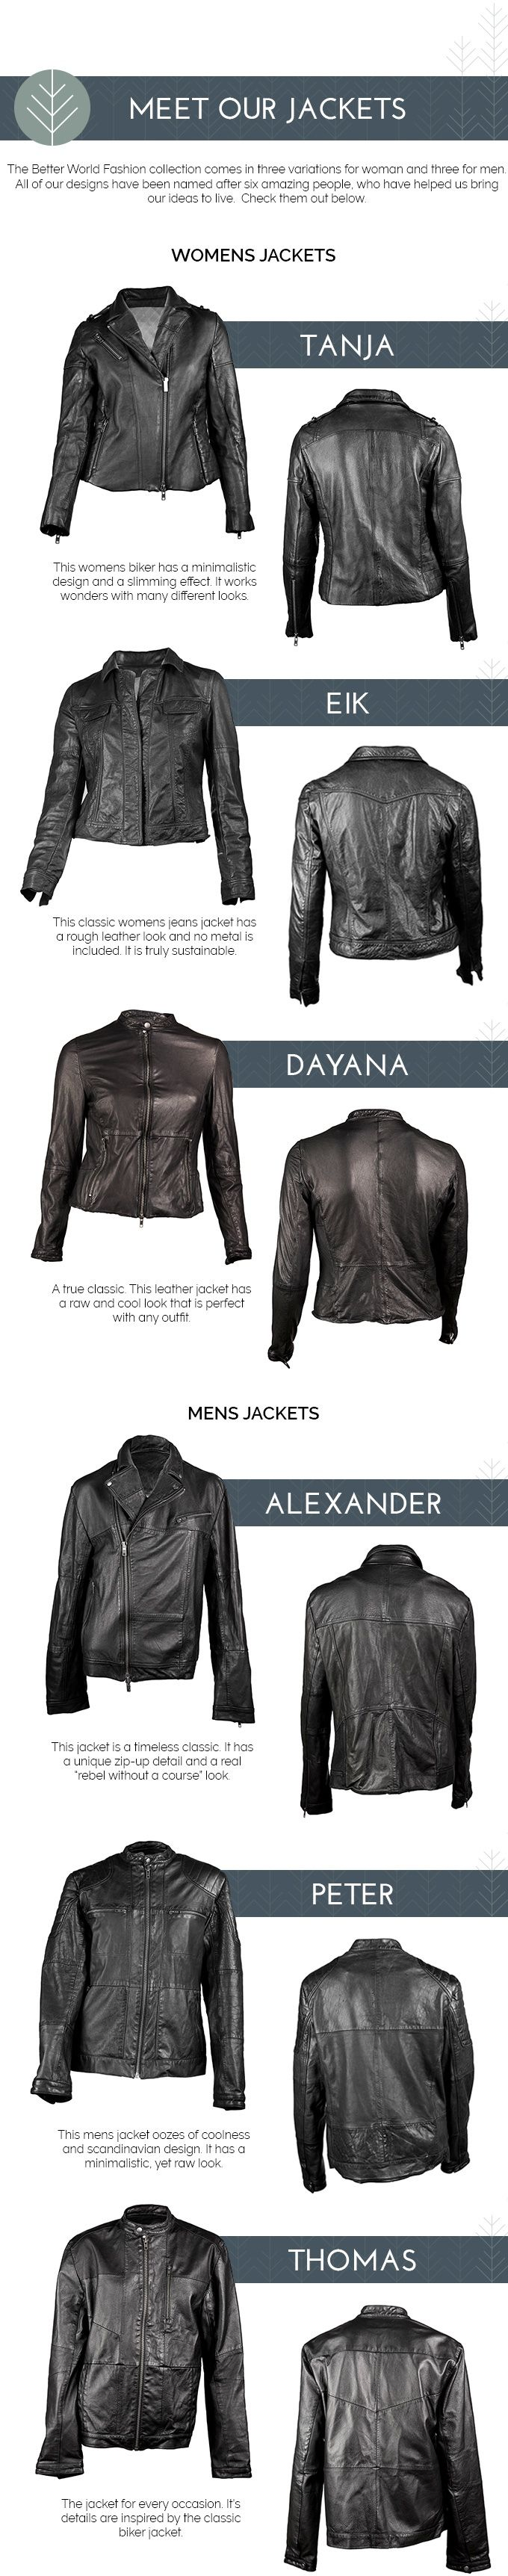 Help Nature! Wear 100% Sustainable Leather Jackets from Better World Fashion. Recycled for life - made for a Better World!